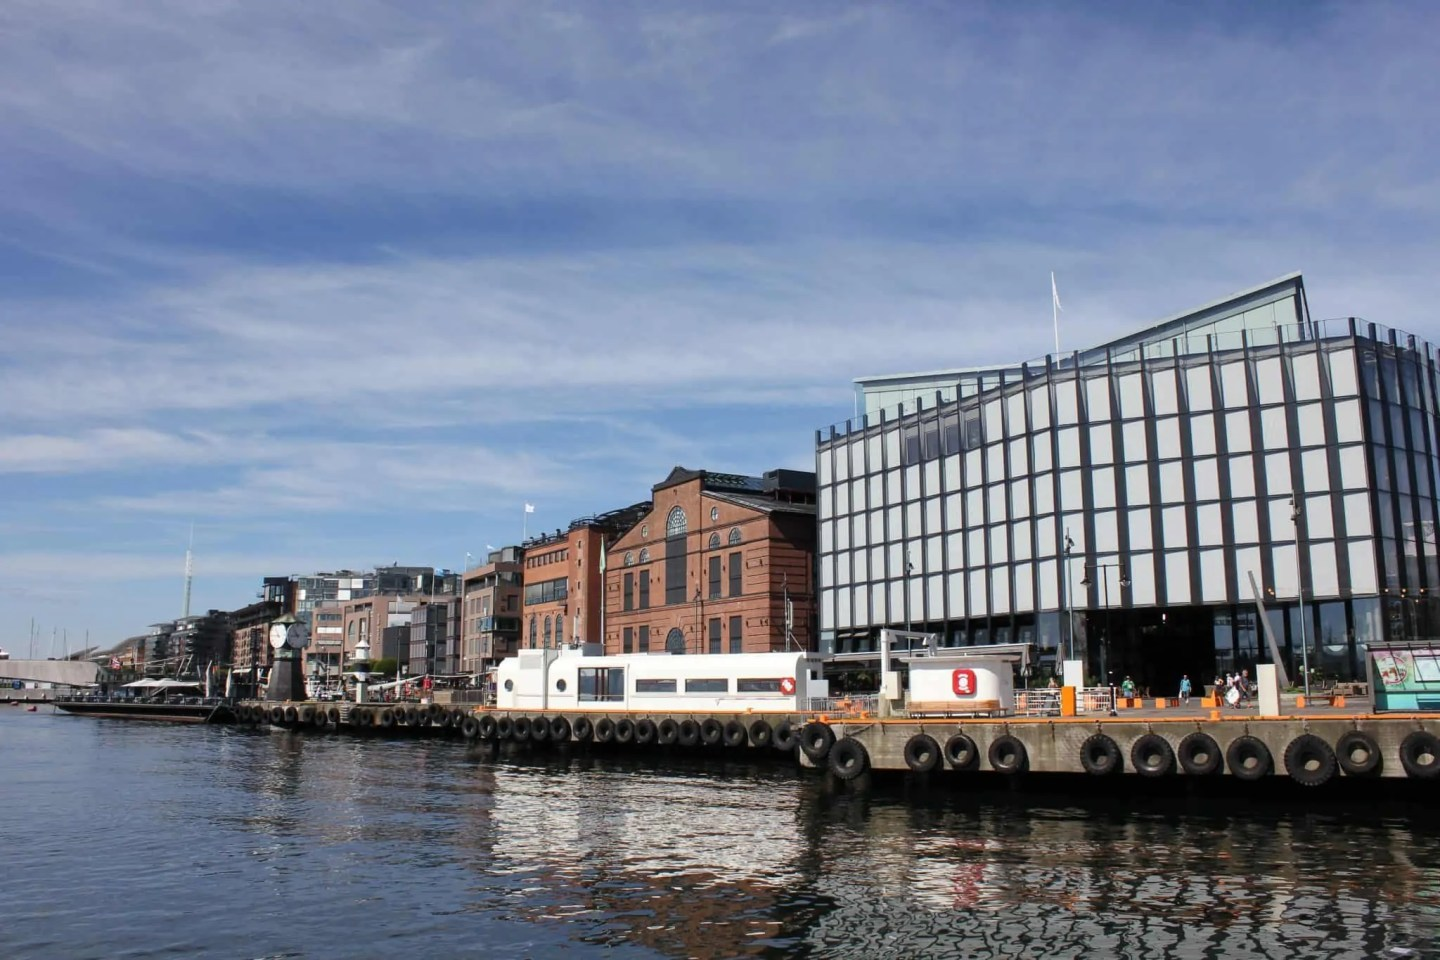 best time to visit Oslo, things to do in Oslo, free things to do in Oslo, fun things to do in Oslo, Oslo in summer, Aker Brygge